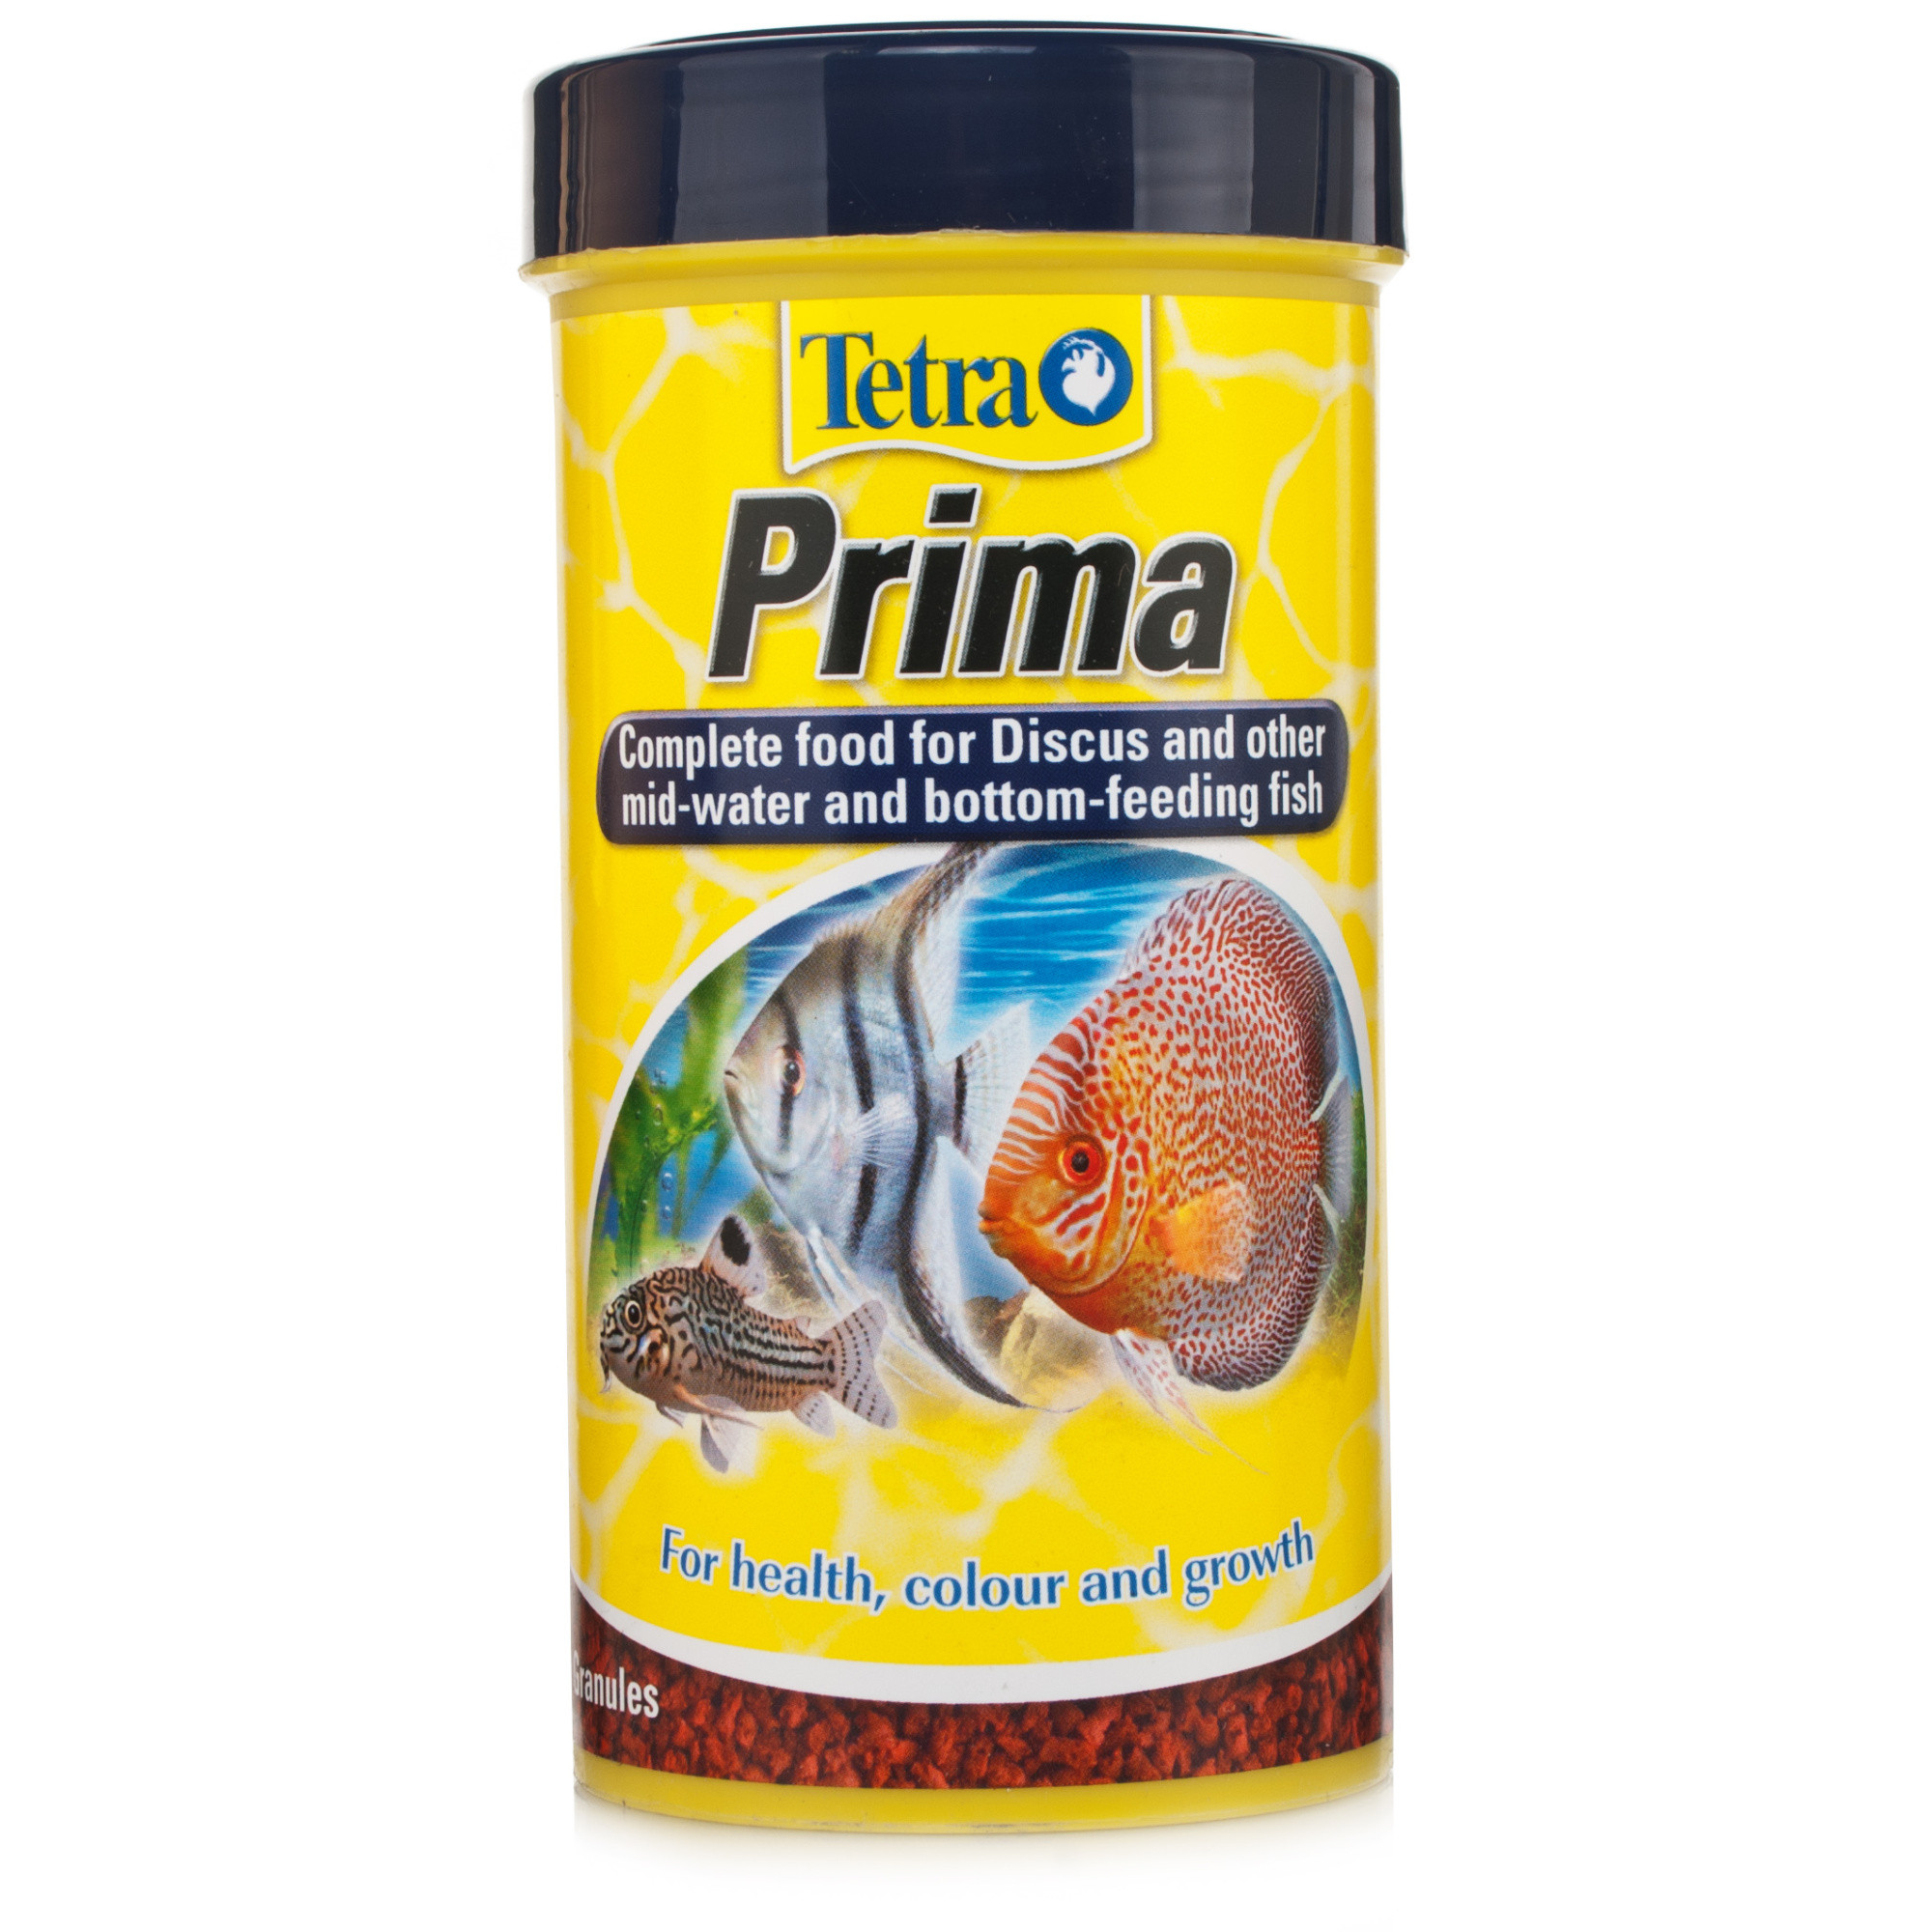 Tetra Prima Fish Food 75g by Tetra